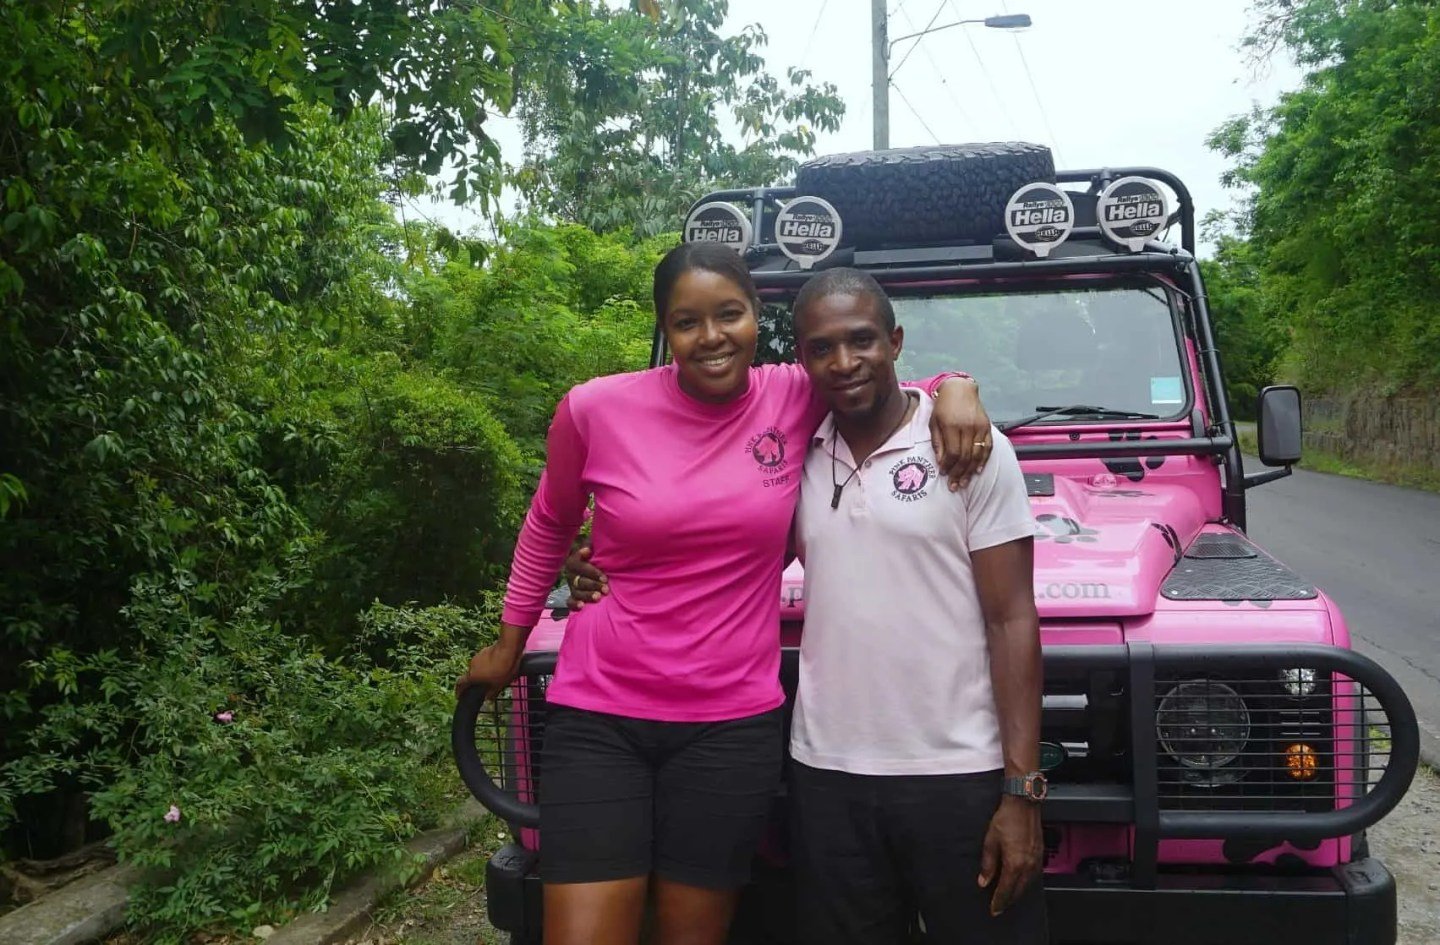 Our guides on the Pink Panther Tour www.extraordinarychaos.com